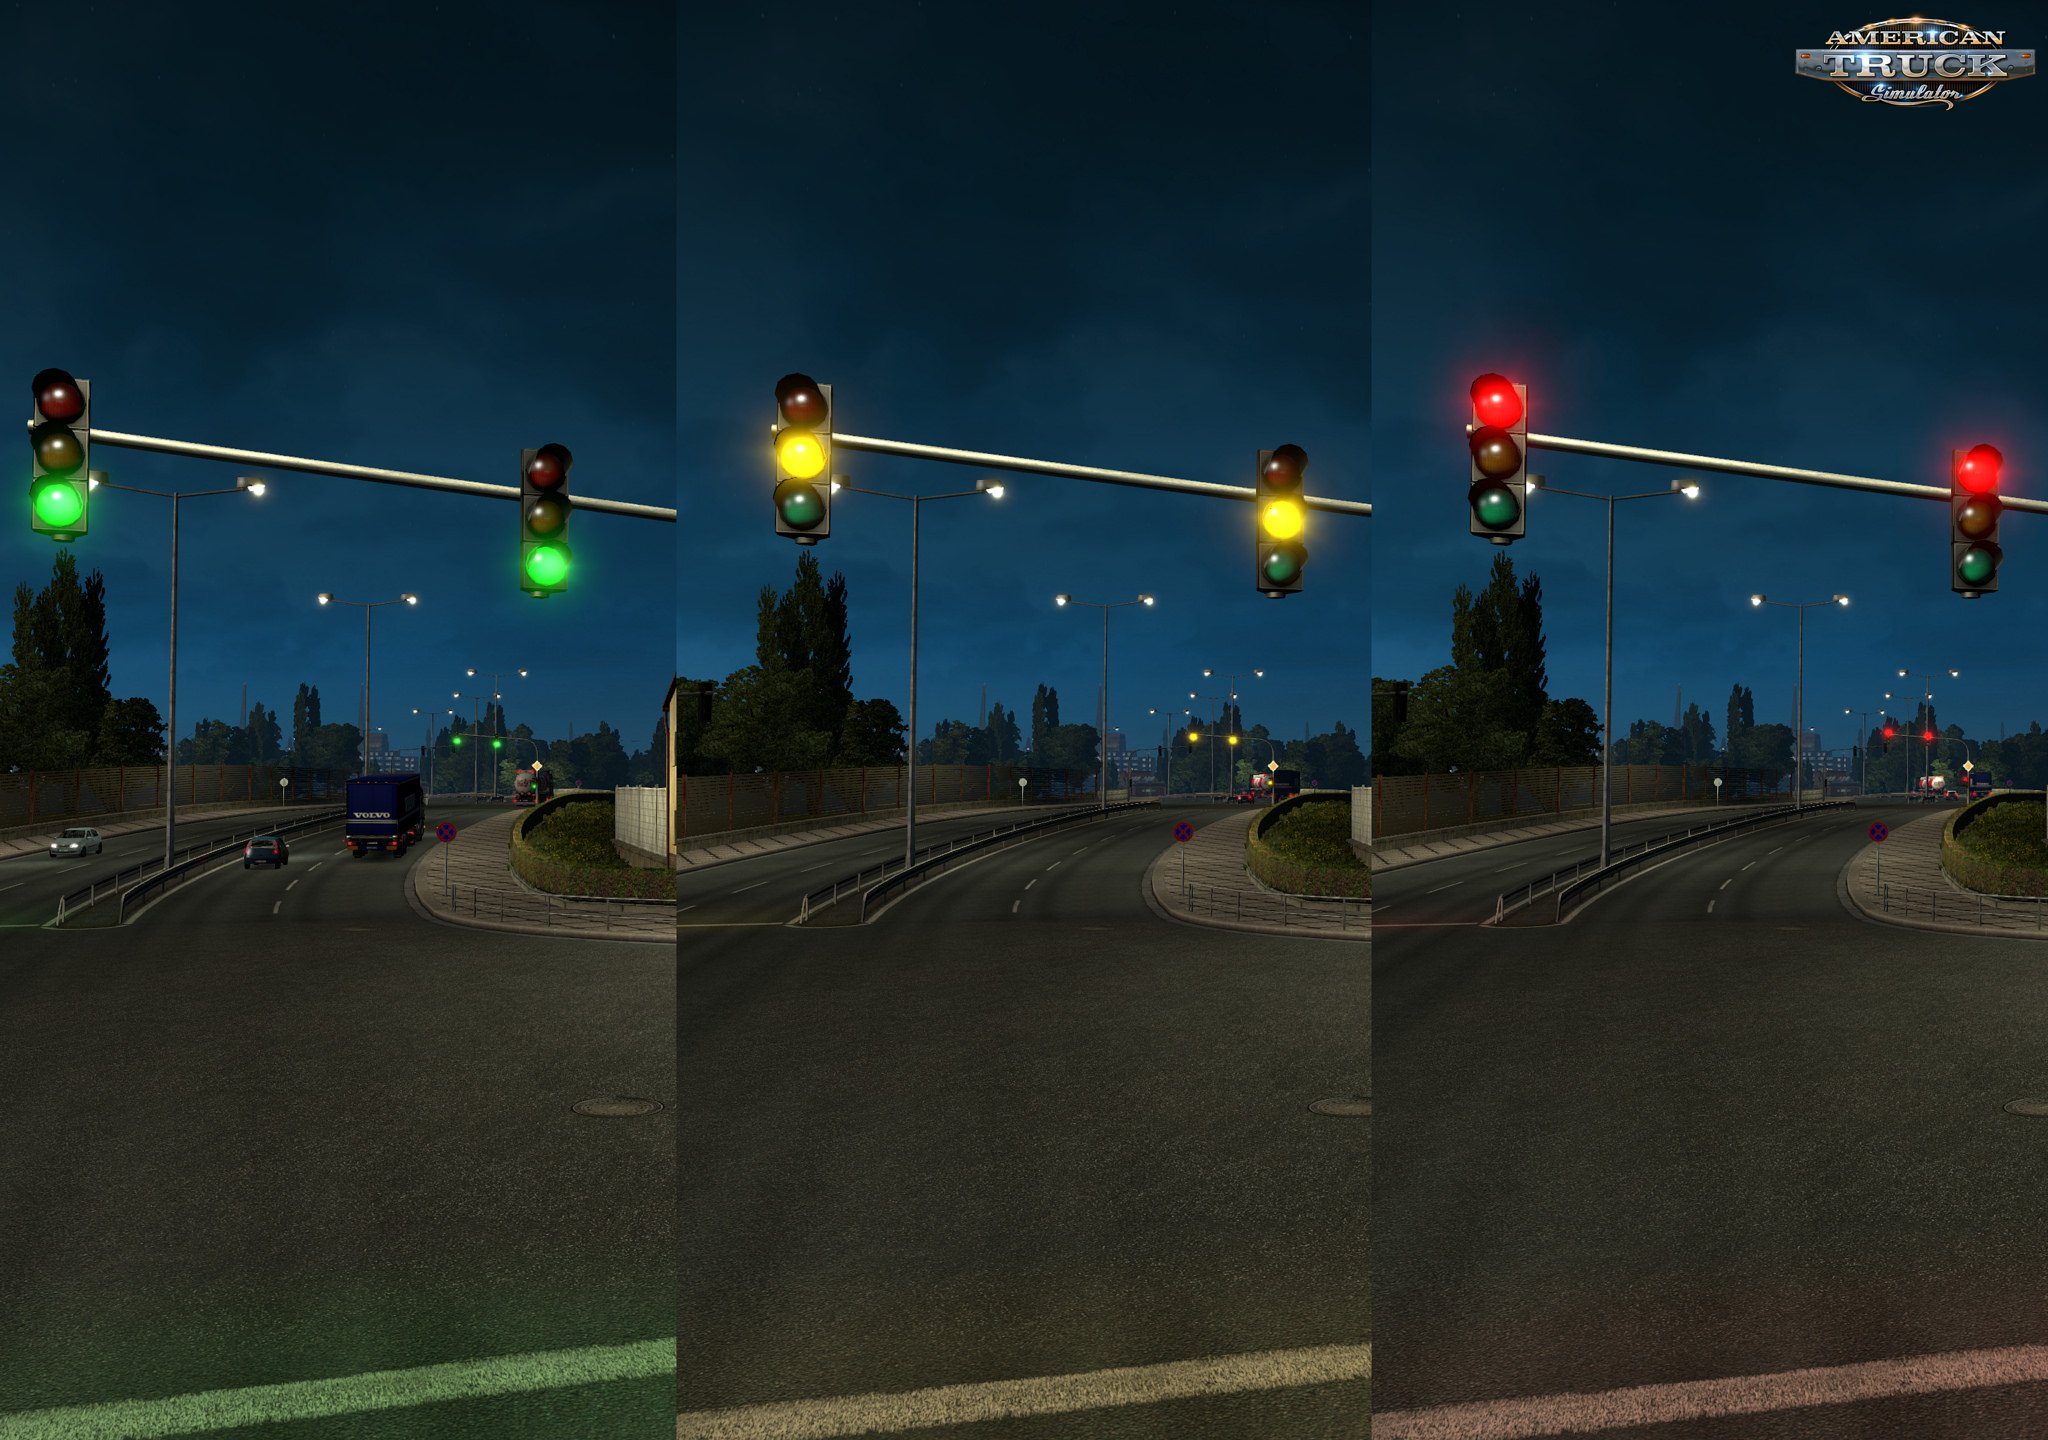 Tweaked SCS flares v1.3 for Ats by obelihnio